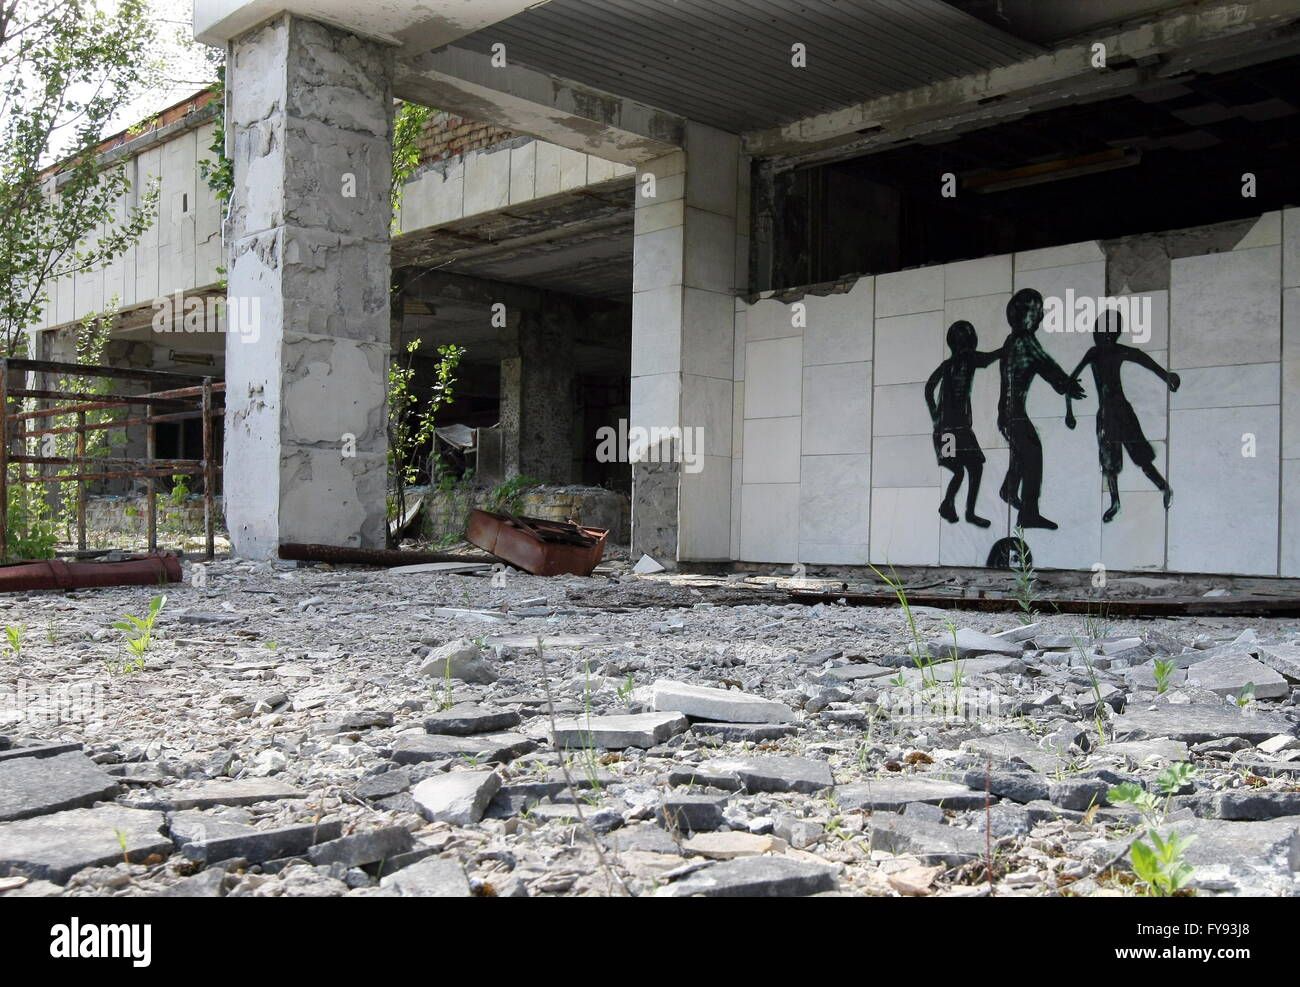 PRIPYAT, UKRAINE. Pictured in this file image is a wall mural in the abandoned town of Pripyat near the Chernobyl - Stock Image